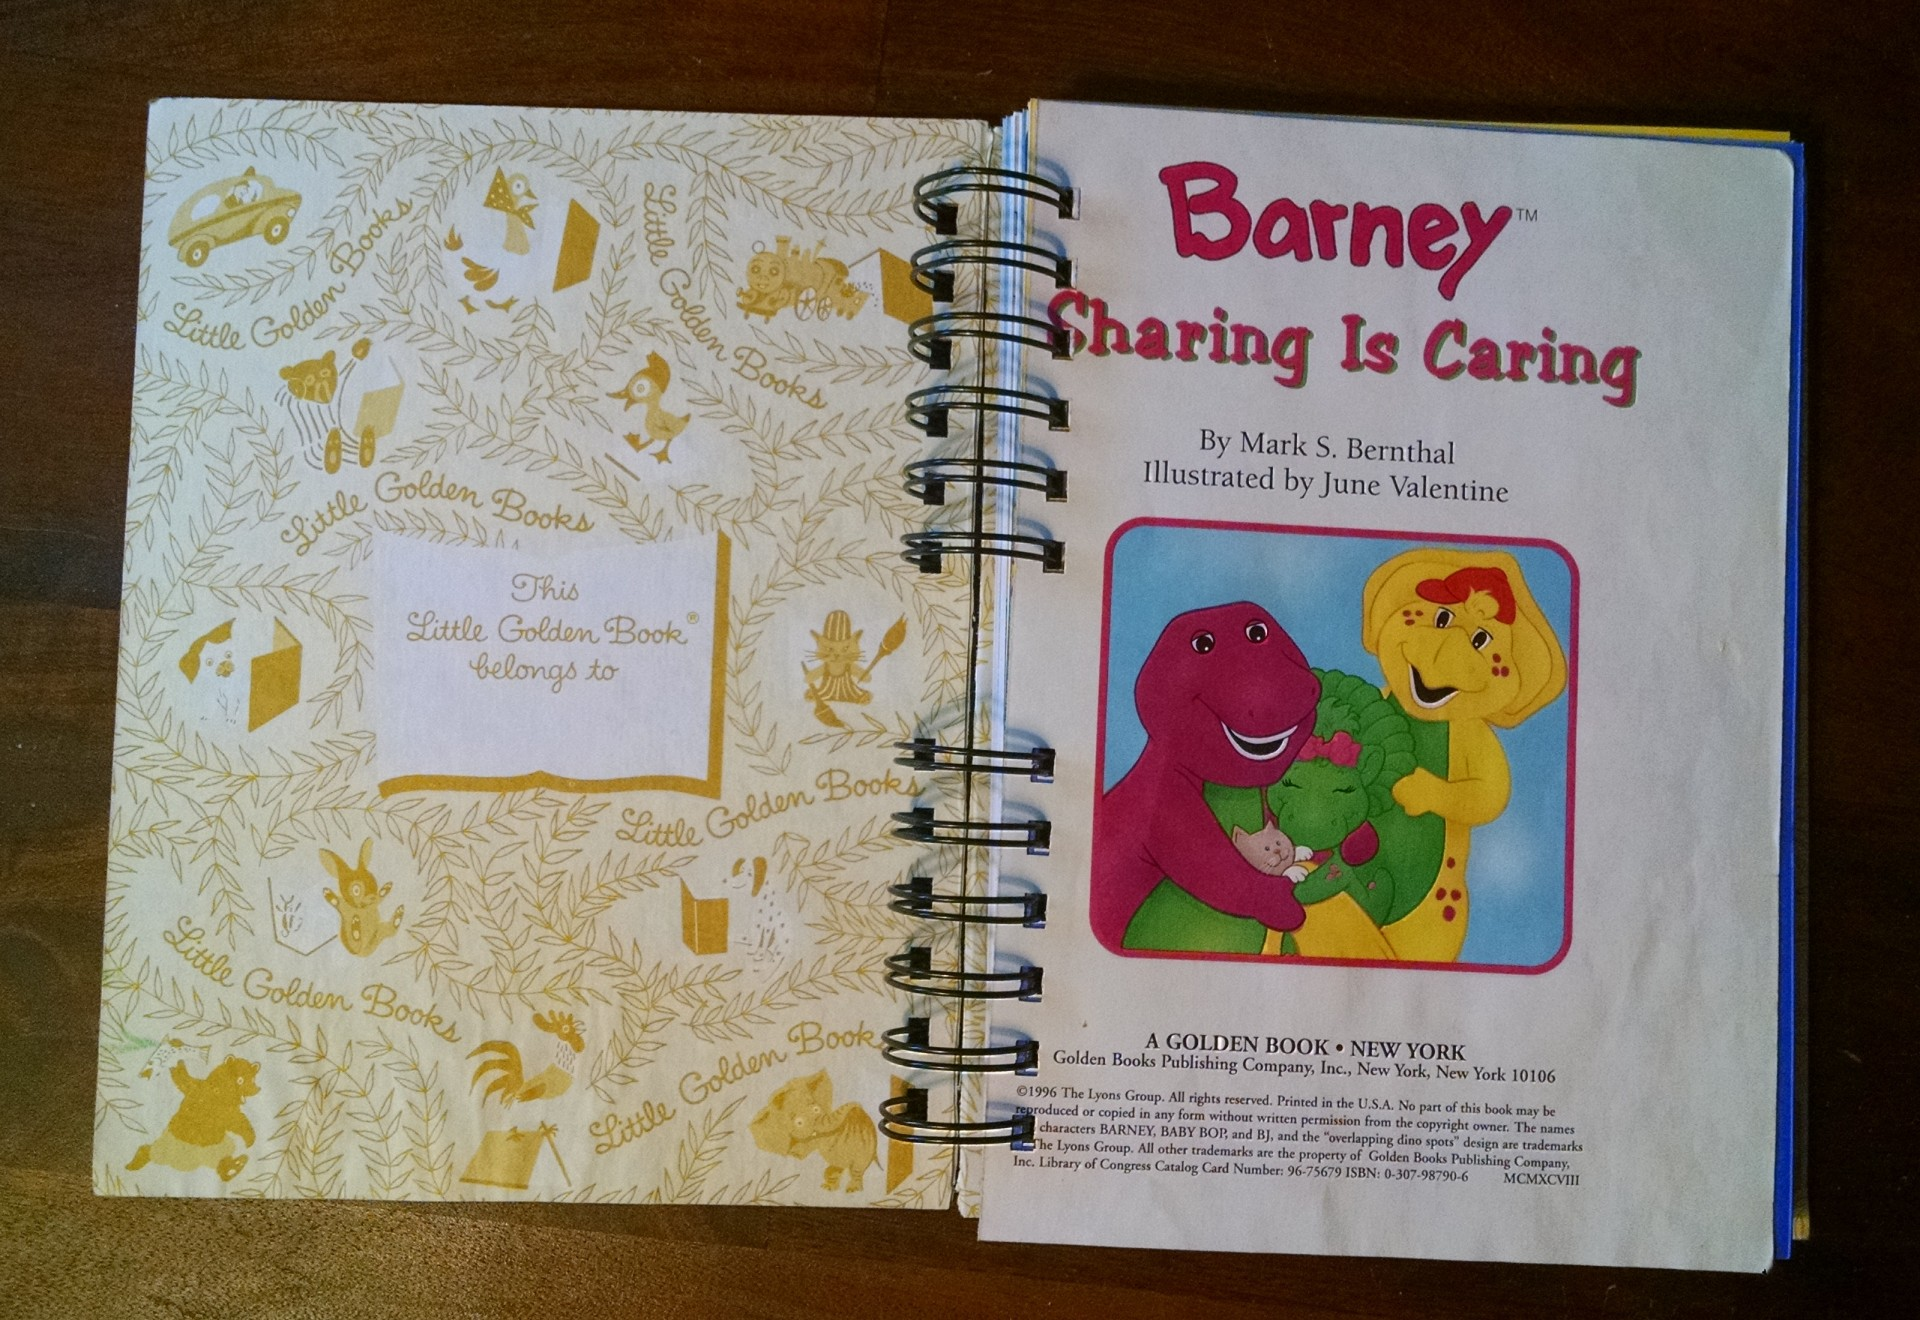 015 Essay Example Sharing And Caring Barney Recycled Little Golden Book Journal Interior Atrs Crafts Activities Toddlers Activity For Kindergarten Application Astoria Formidable Is Grade 3 Class 2 1920